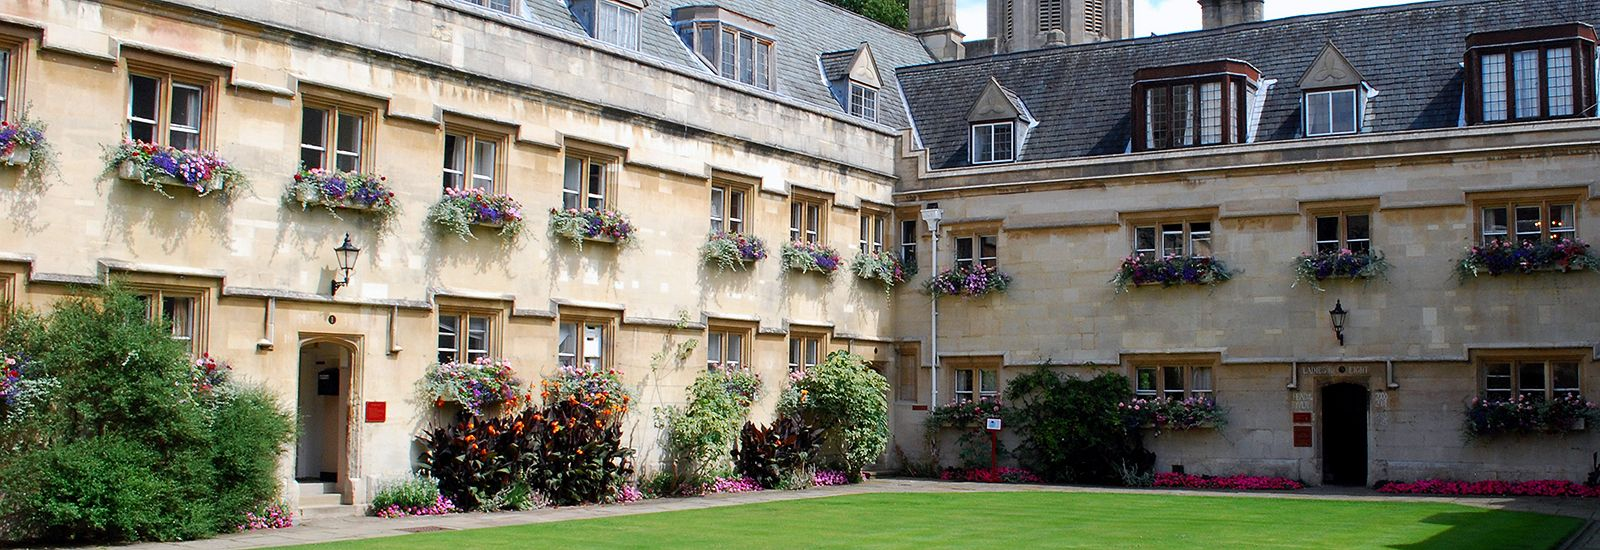 A quad at Pembroke College on a sunny day